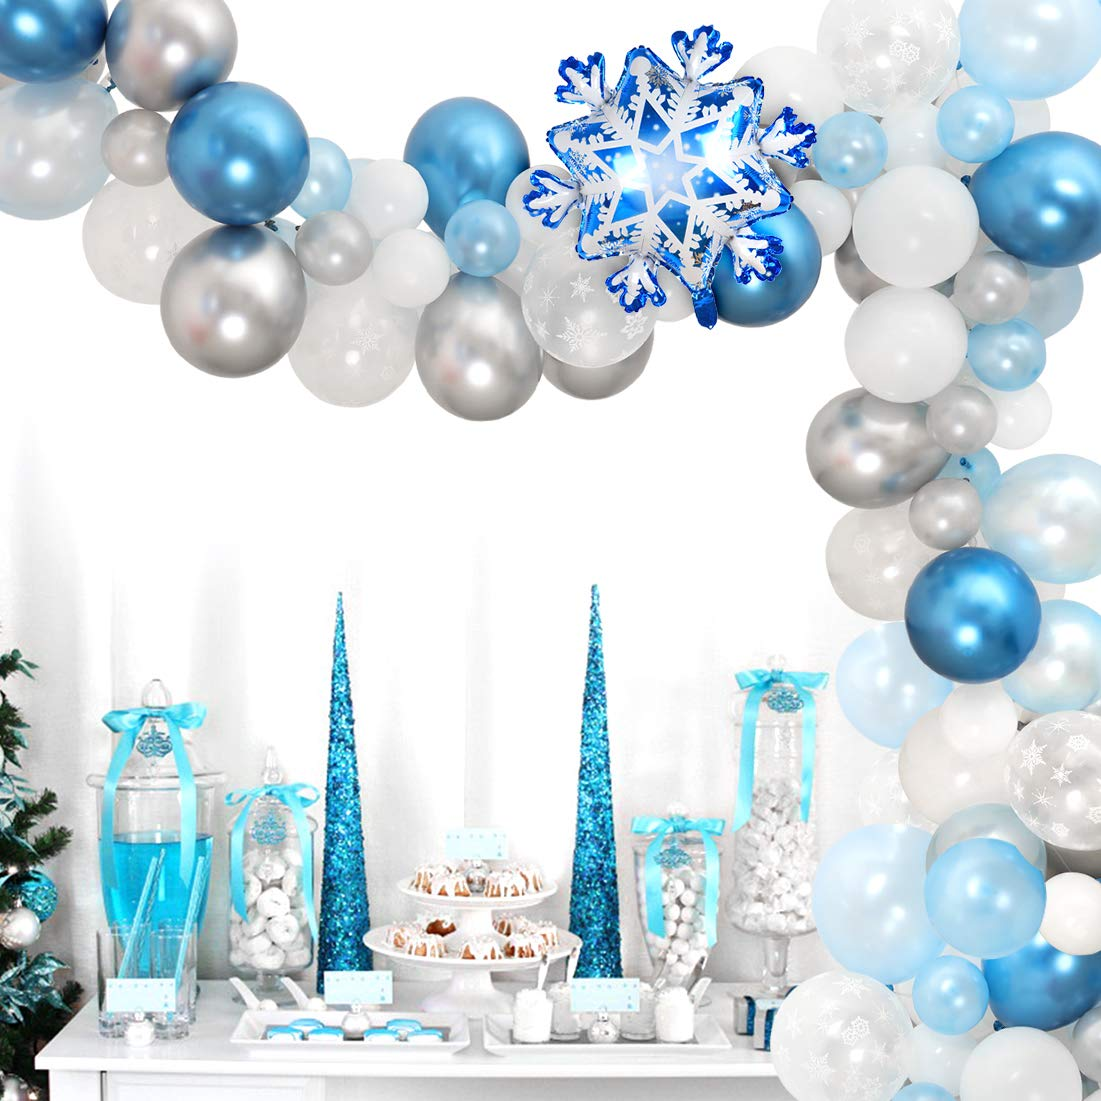 Snowflake Balloon Garland Arch Kit 90 Pack Snowflake Balloons For Winter Wonderland Holiday Christmas Baby Shower Snow Princess Birthday Party